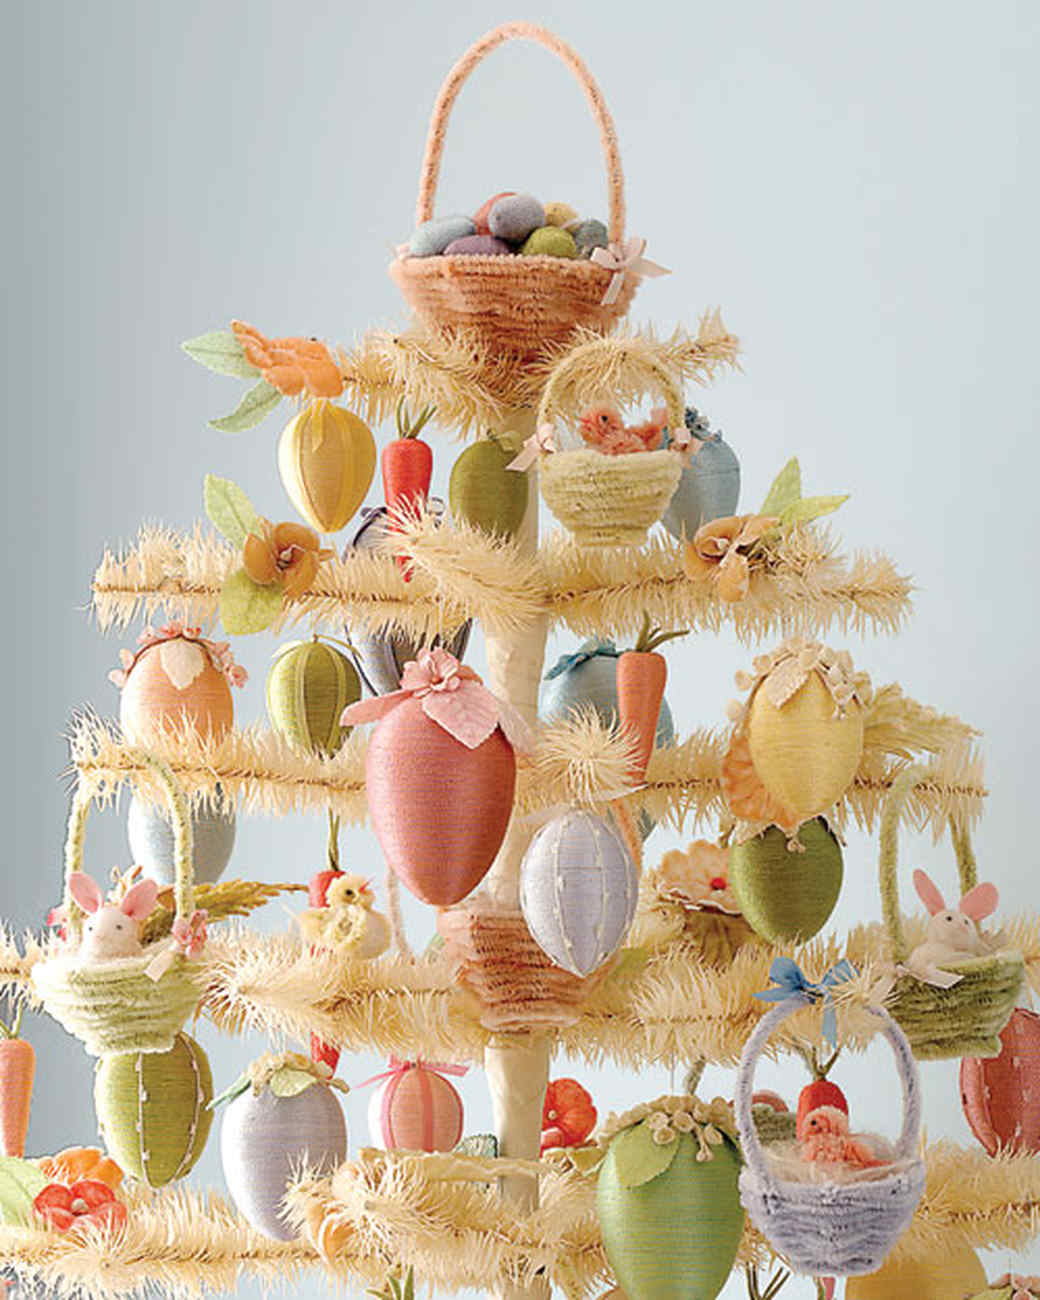 Easter Decorating Ideas decorating for easter | martha stewart